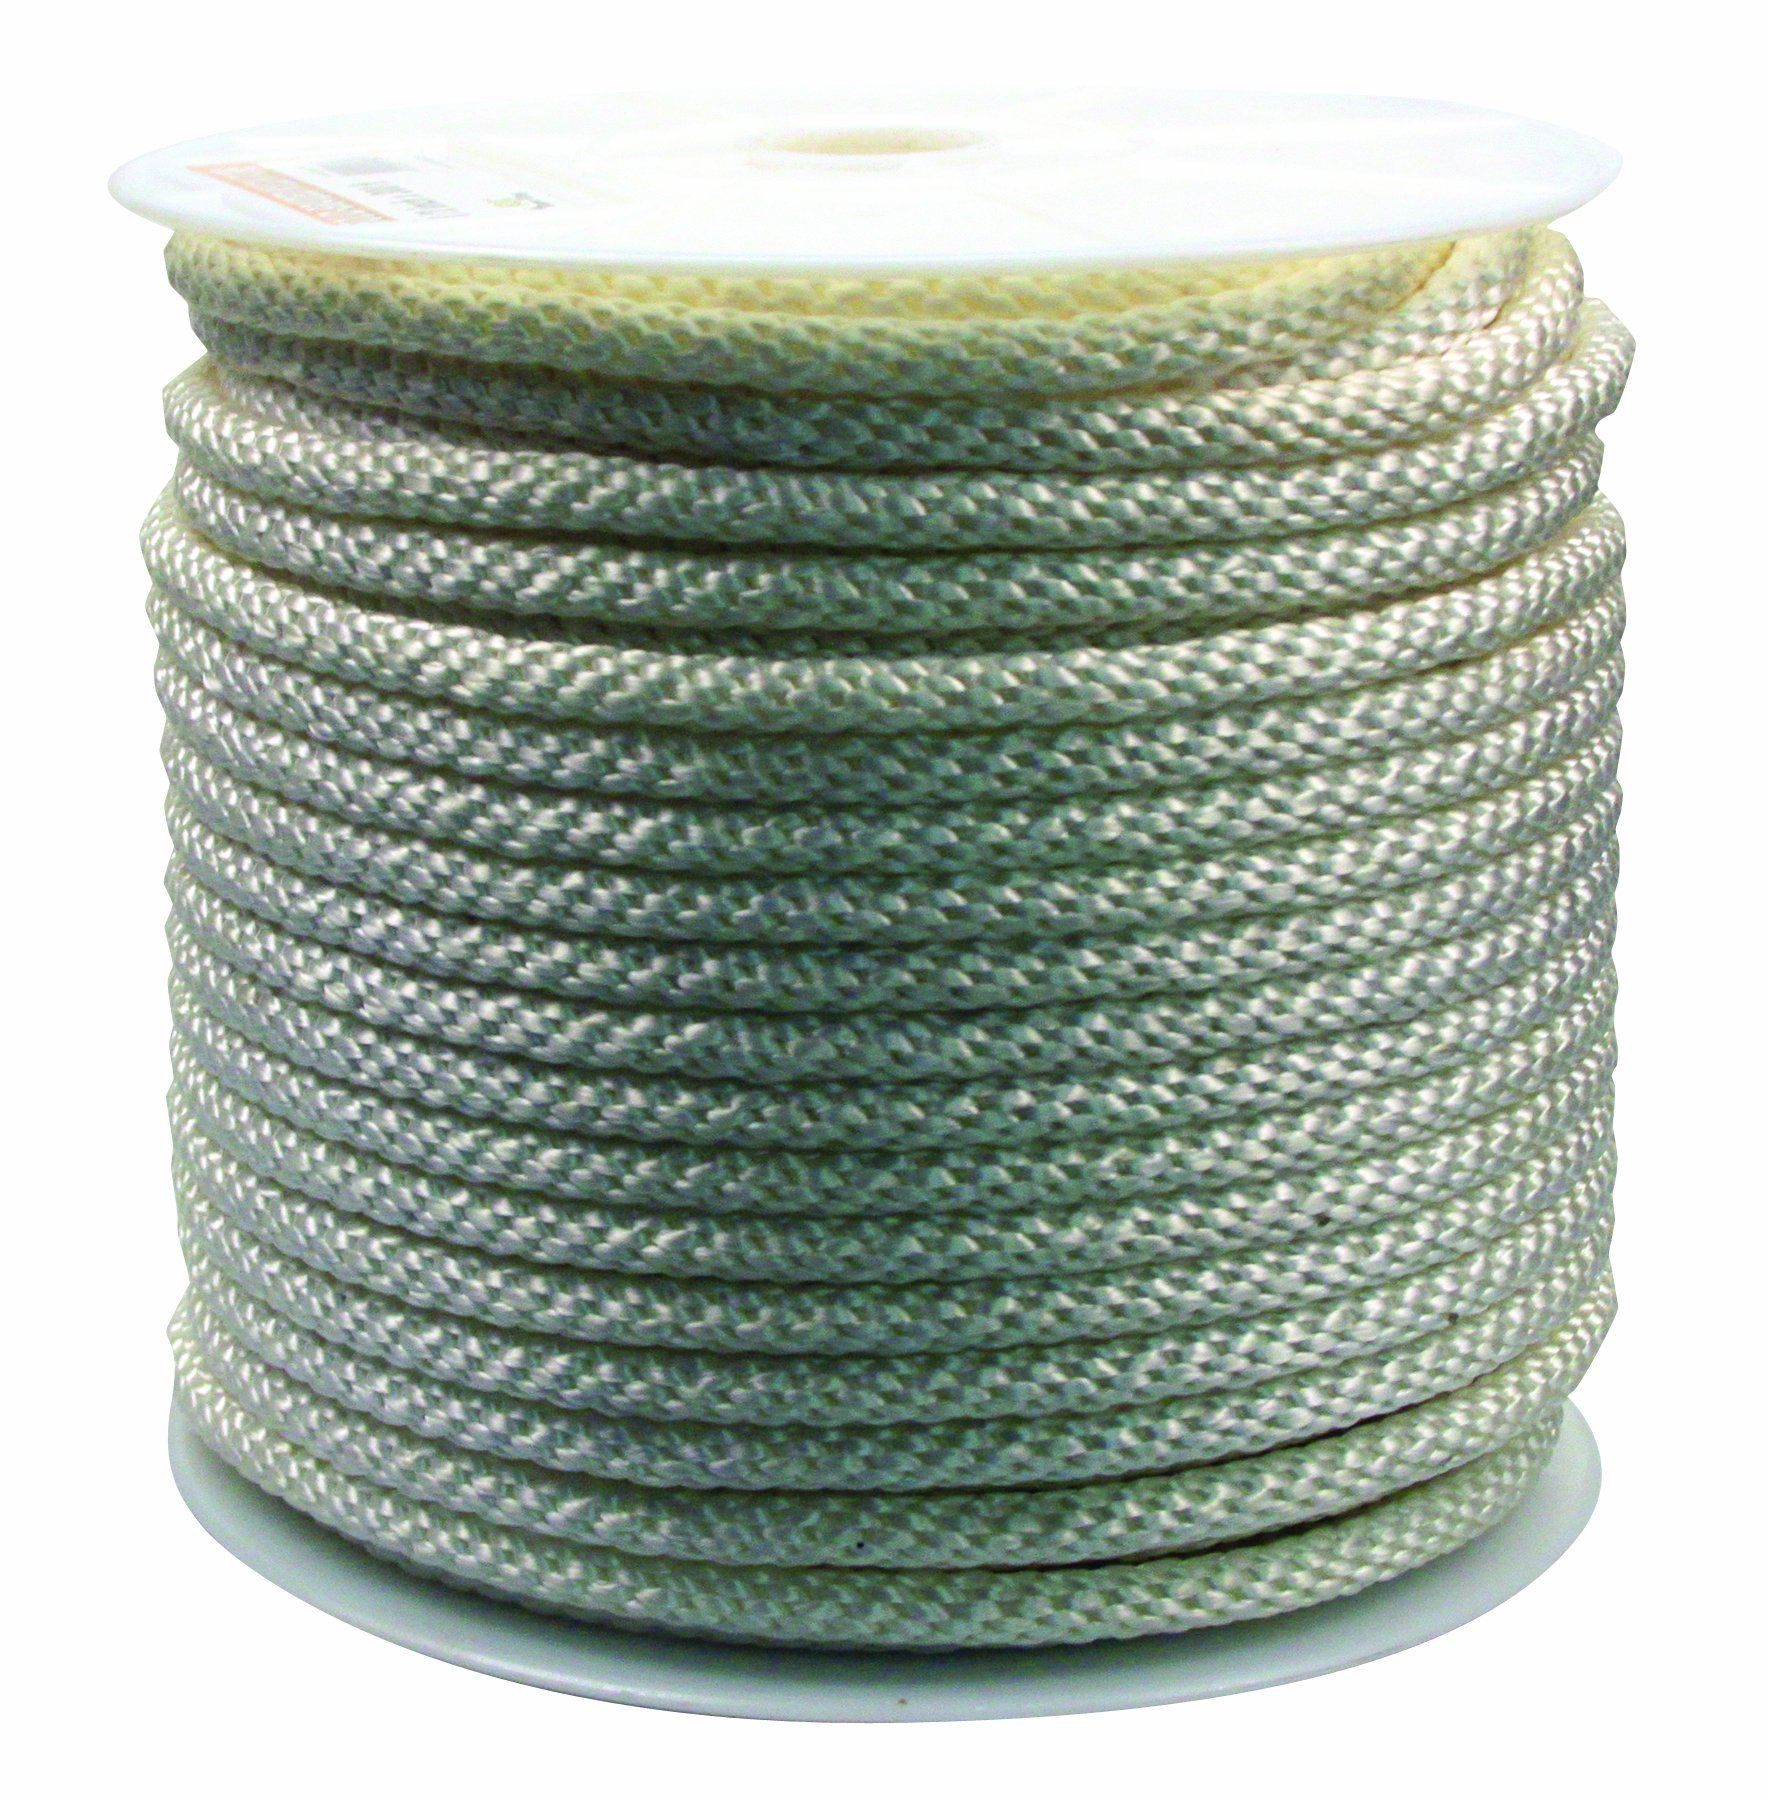 Rope King SBN-12300 Solid Braided Nylon Rope 1/2 inch x 300 feet